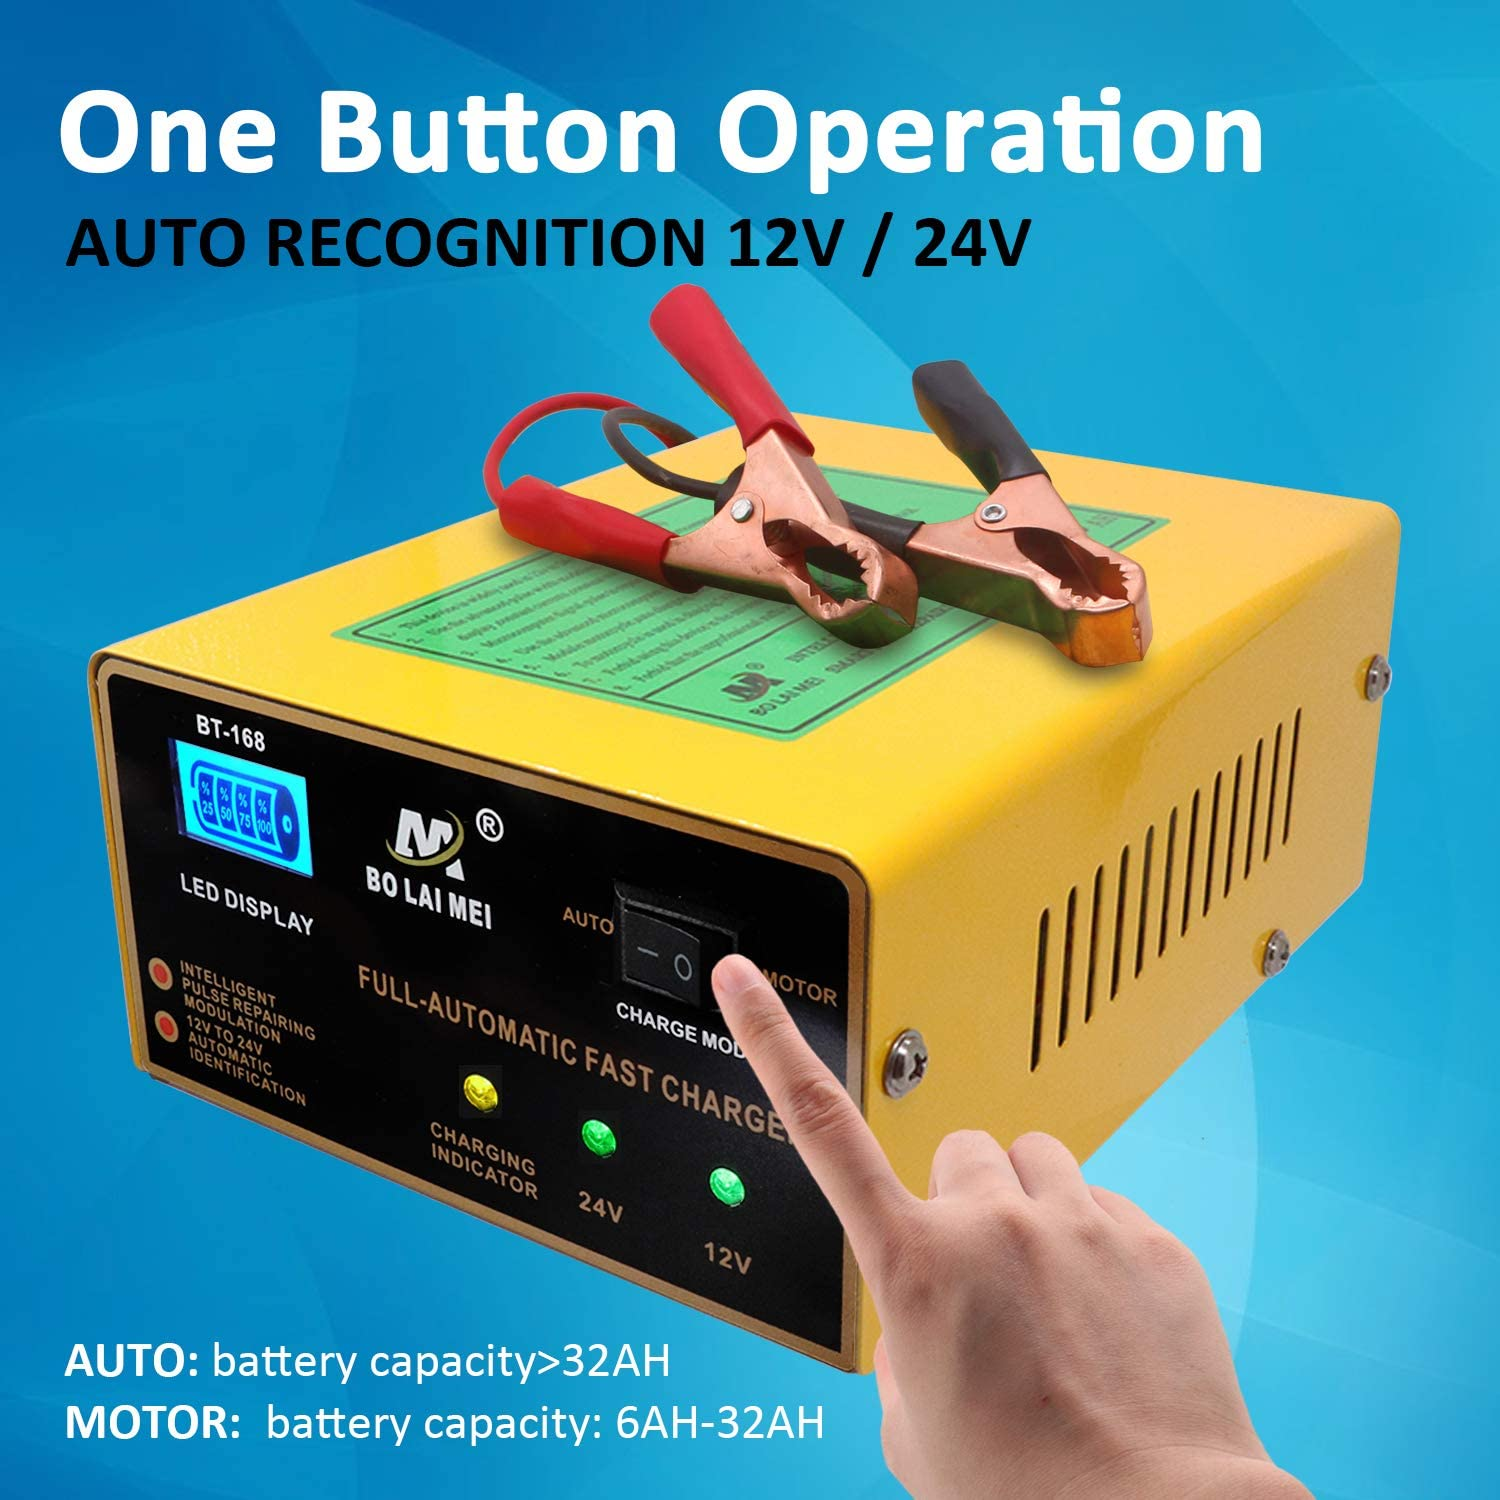 XDDXIAO Chargeur De Batterie De Voiture Enti/èrement Automatique 110V /À 220V /À 12V 6A Intelligent Puissance Rapide Charge Wet Dry Lead Acid Digital LCD Display,Jaune